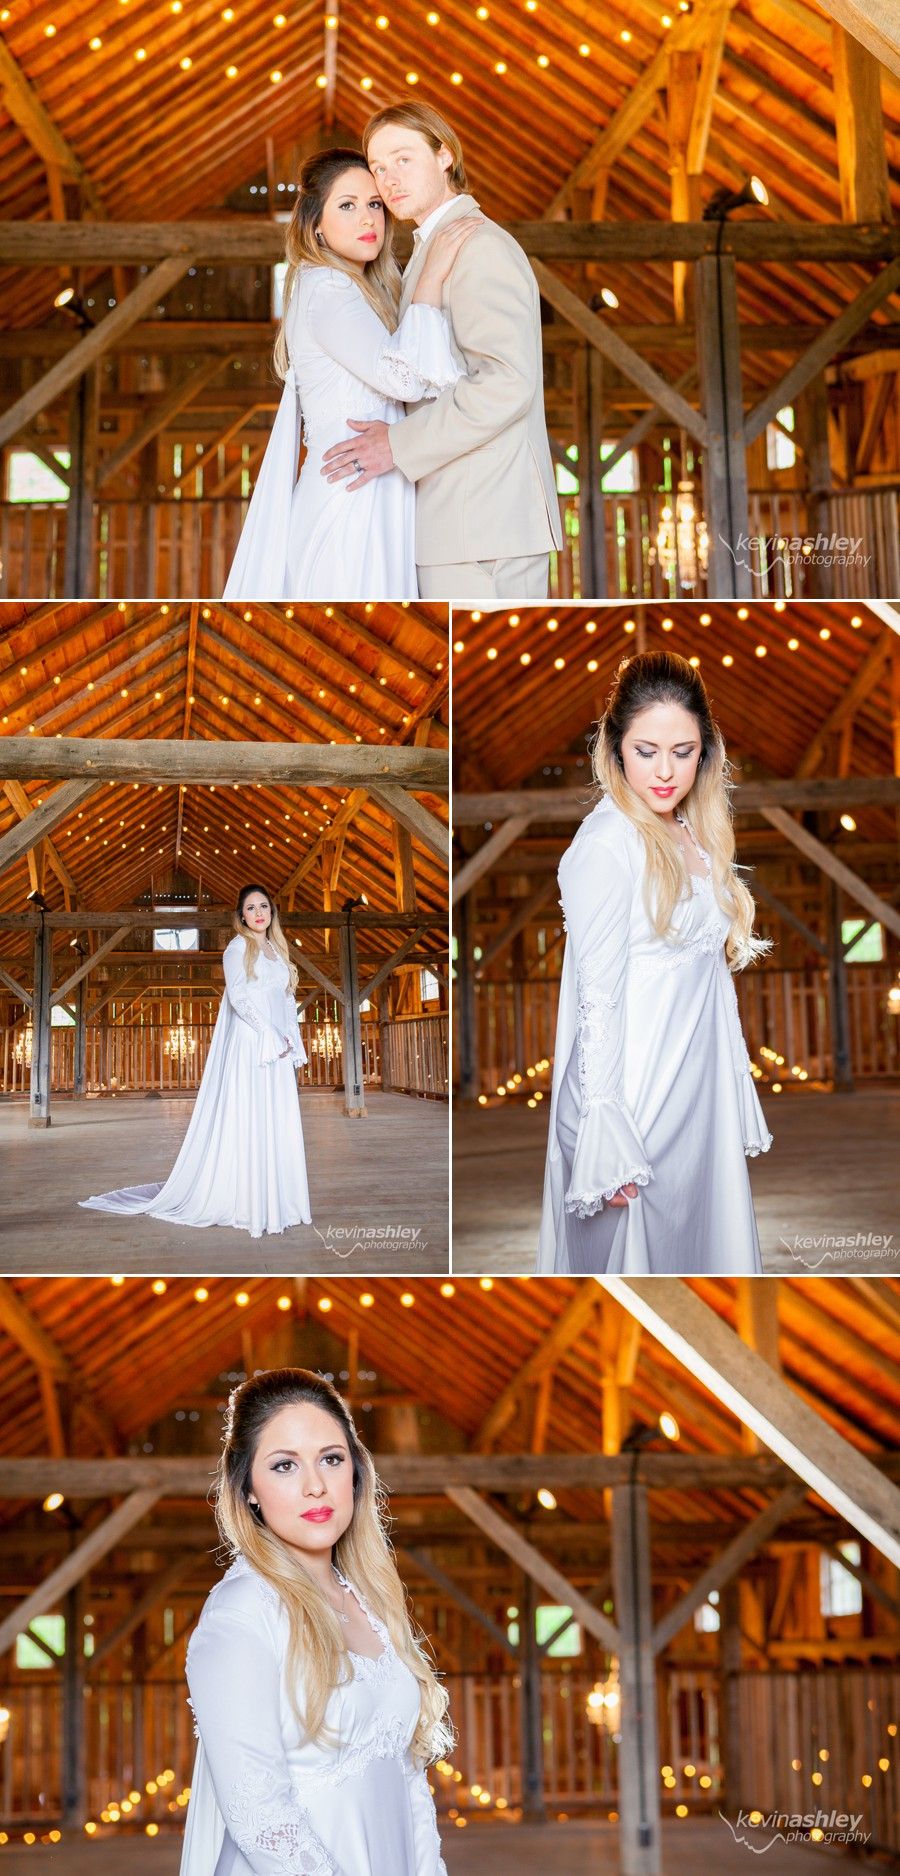 Heritage Ranch Barn Photo Shoot in Sedalia, Missouri. Kansas City Wedding Photographer, Destination Weddings and Portrait Photography. © Kevin Ashley Photography